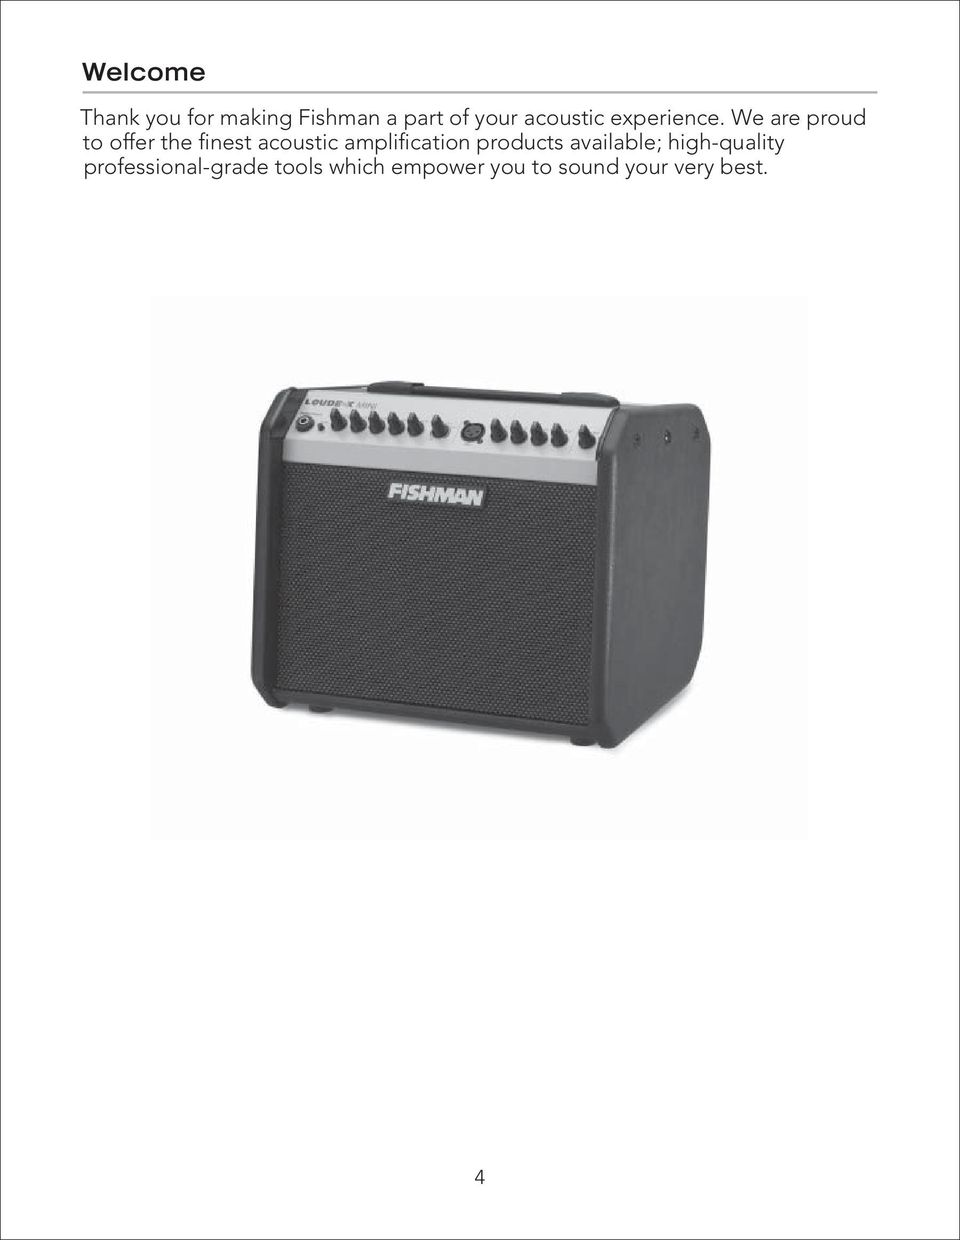 We are proud to offer the finest acoustic amplification